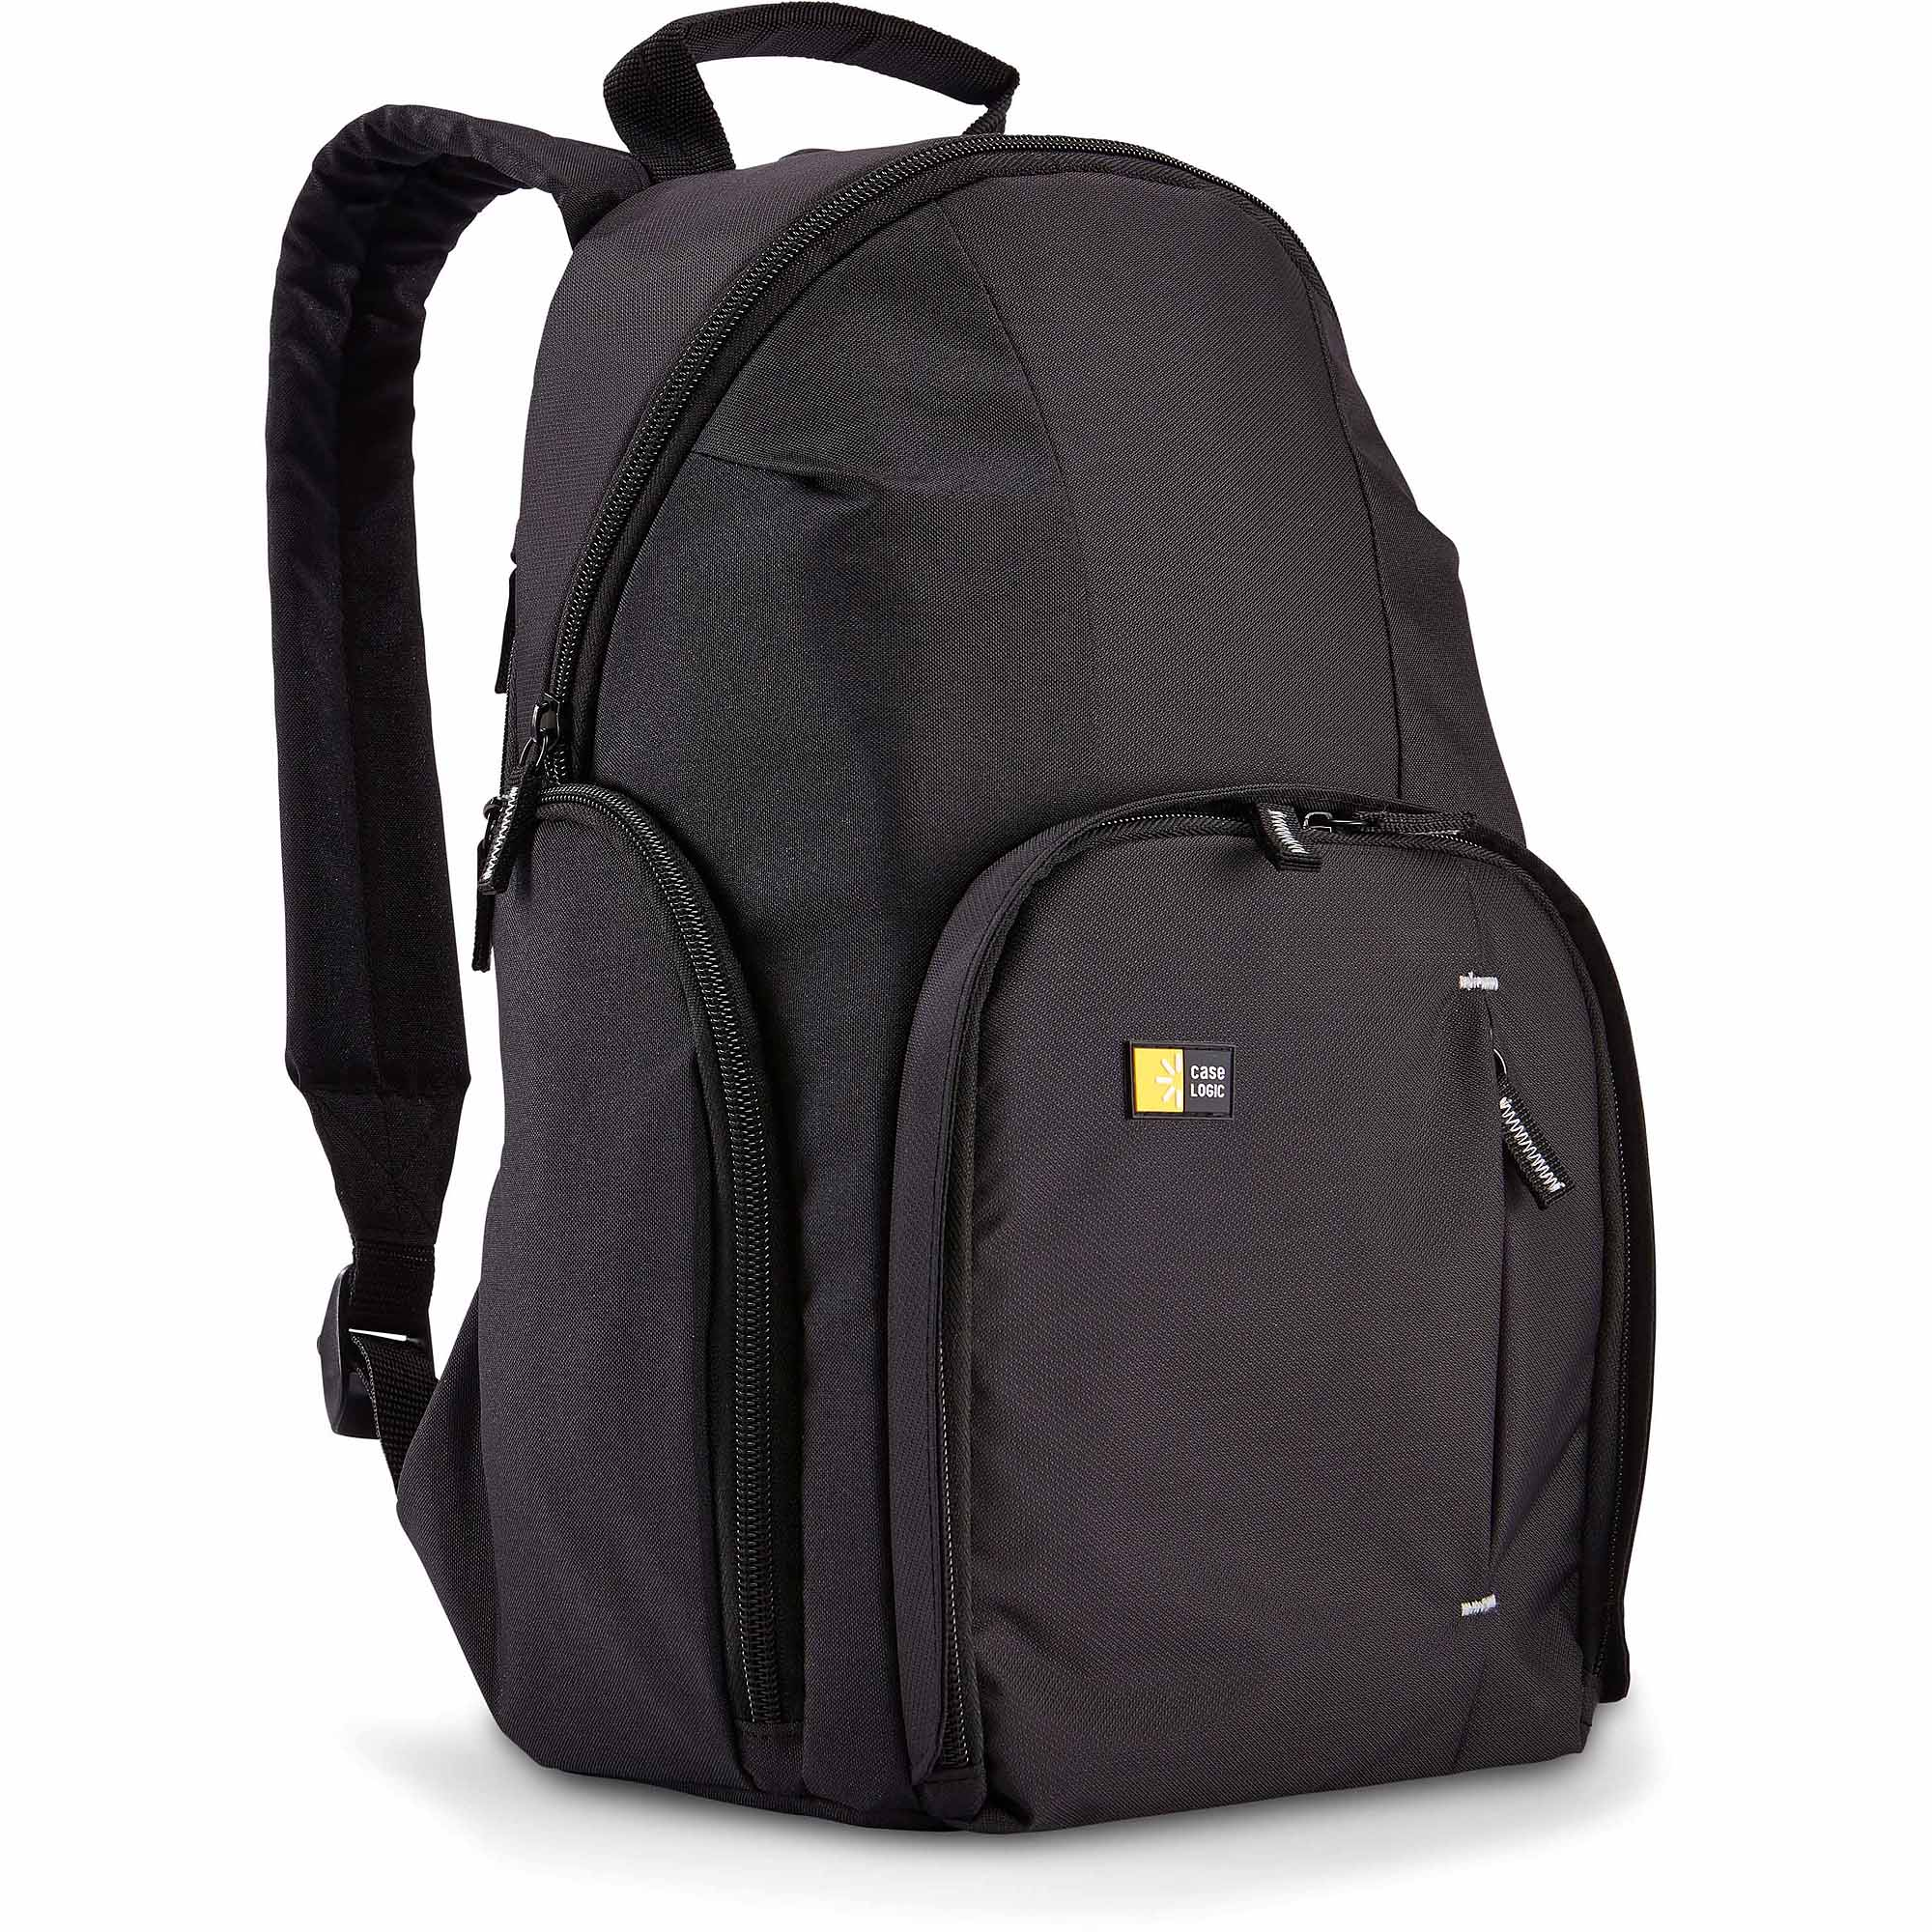 Case Logic TBC-411 DSLR Compact Camera and Apple iPad Backpack, Black